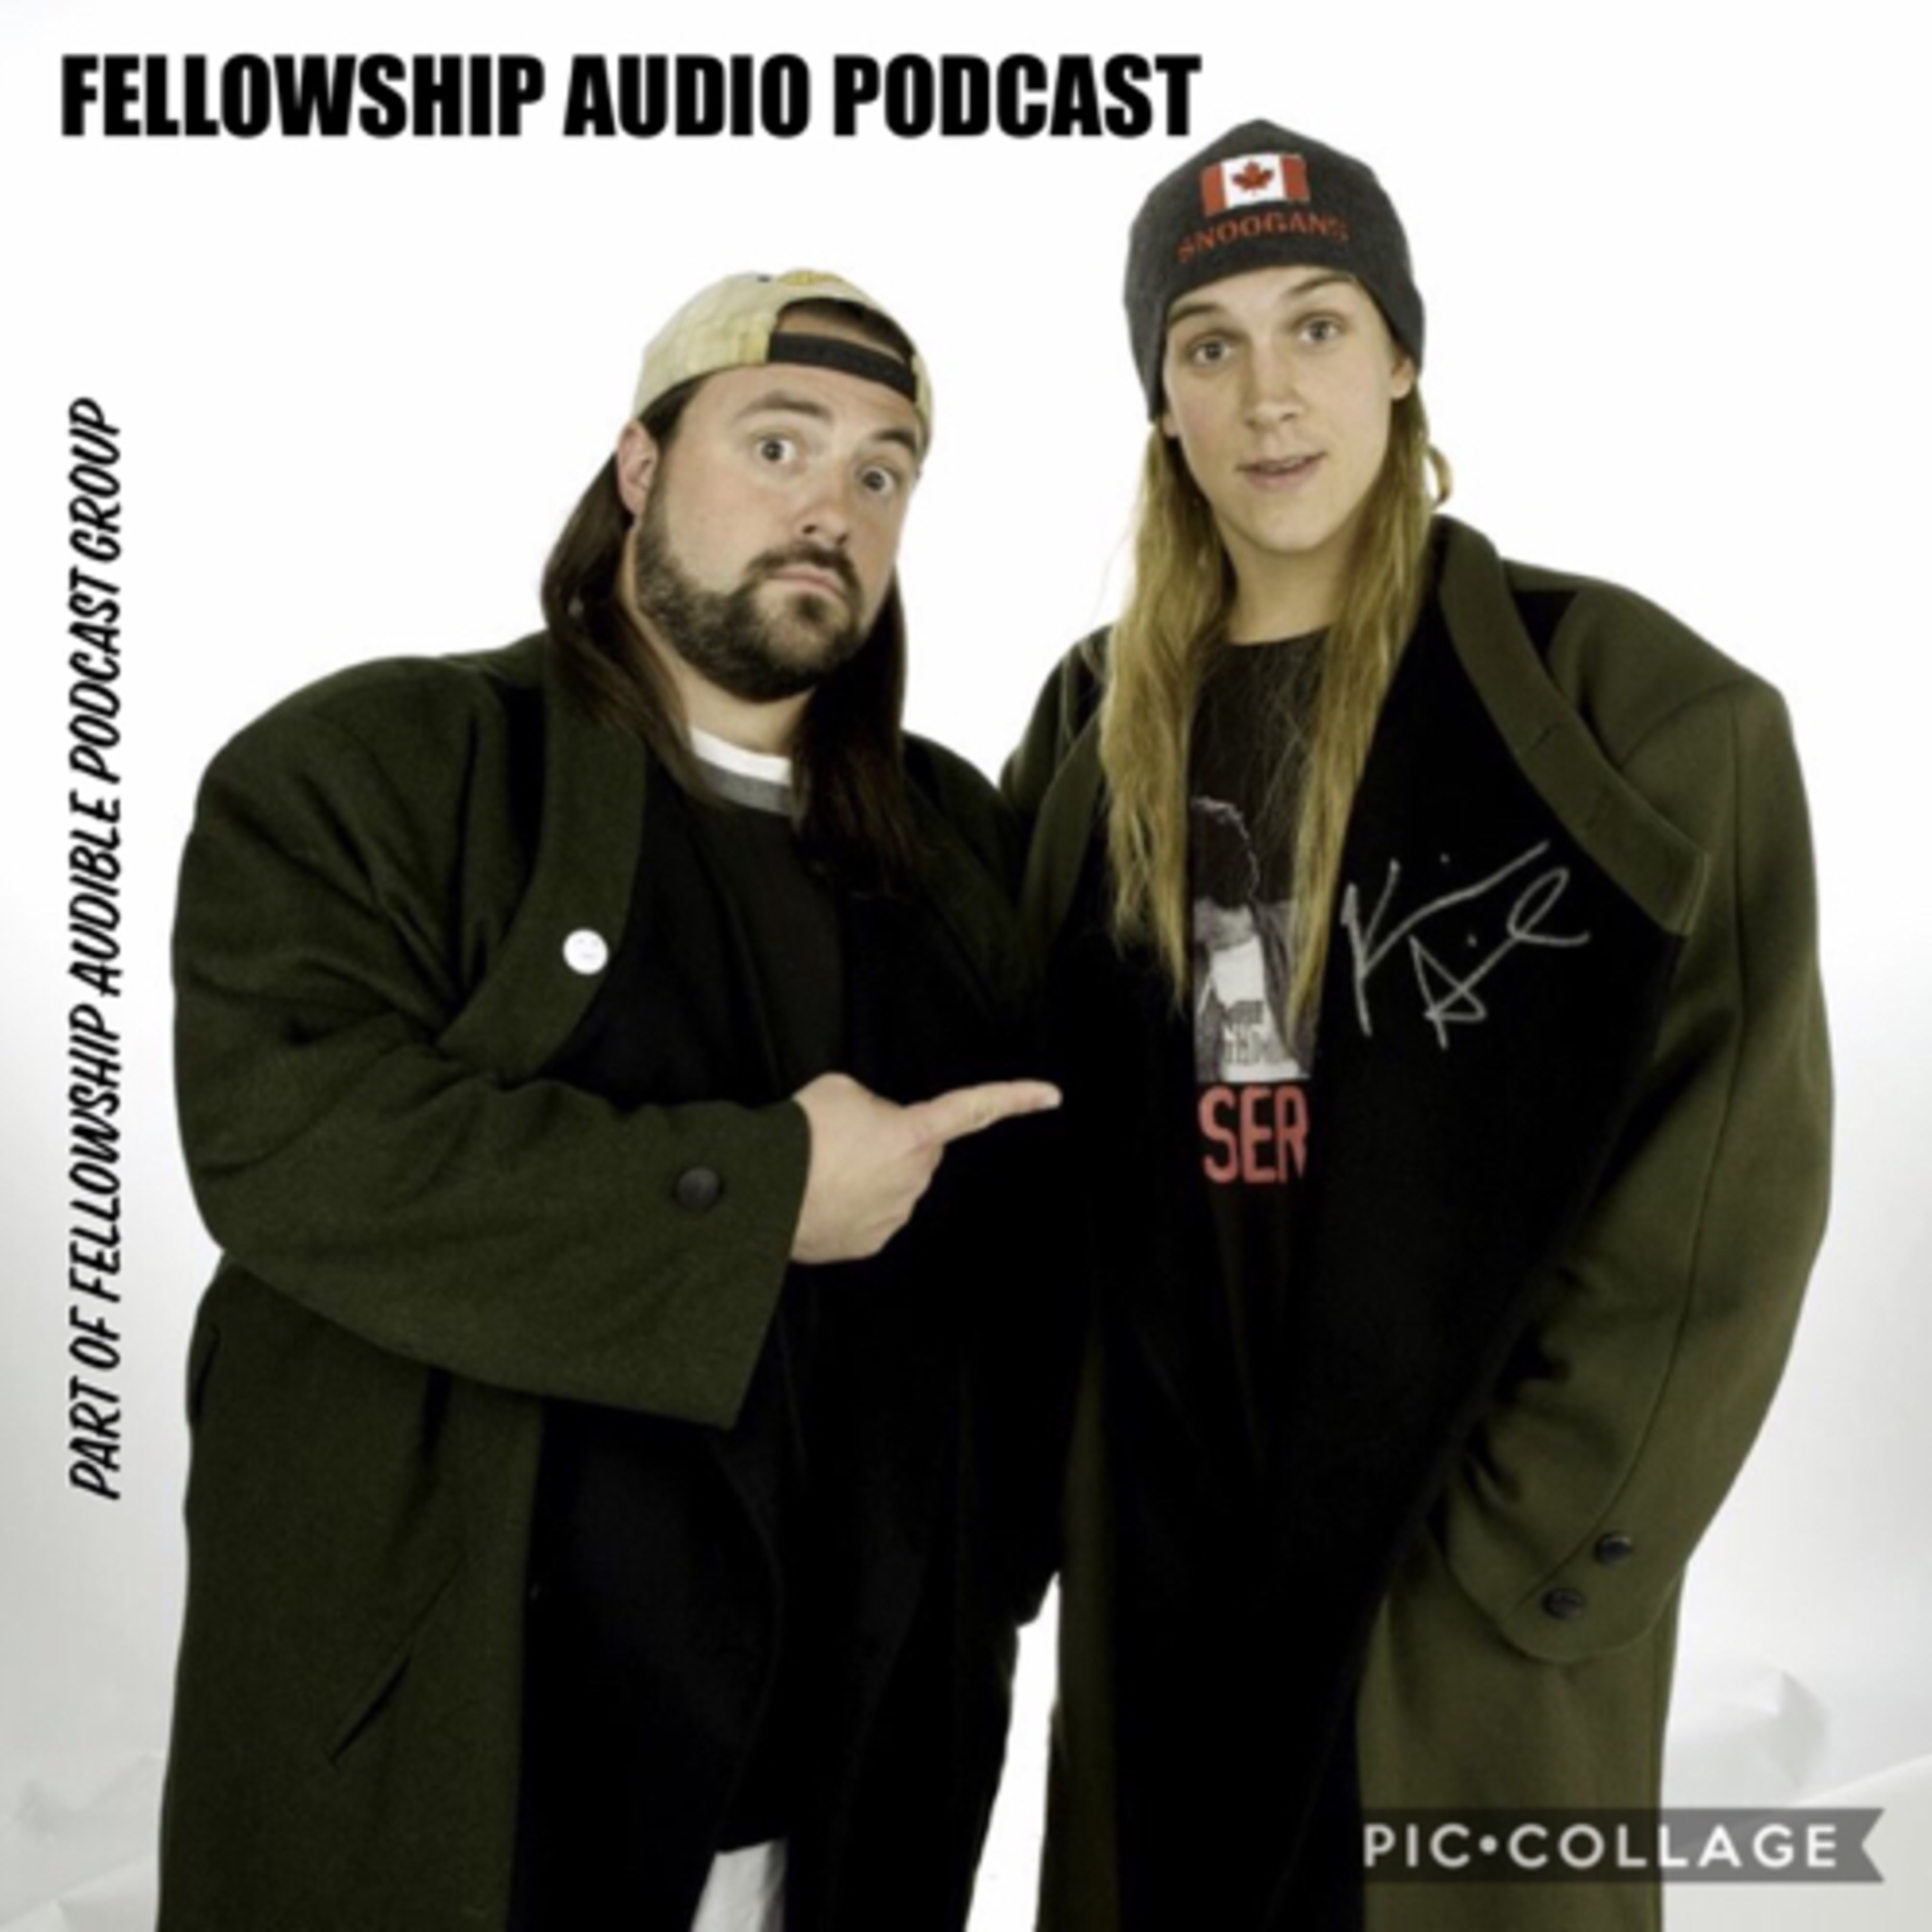 Fellowship Audio Podcast 12SEP19   Keeping up with Jay and Silent Bob